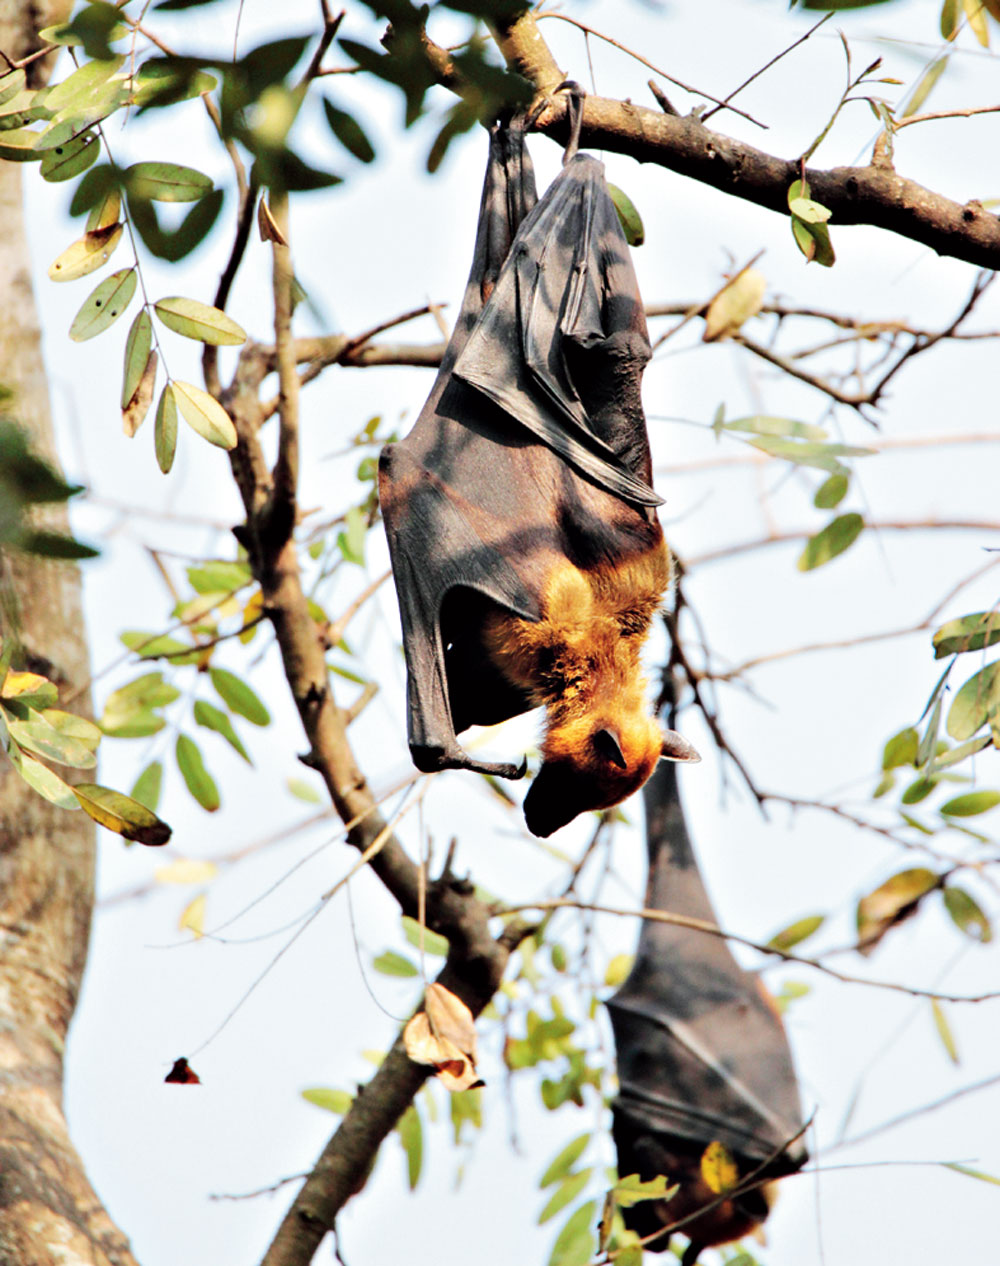 A flying fox admires the world upside down